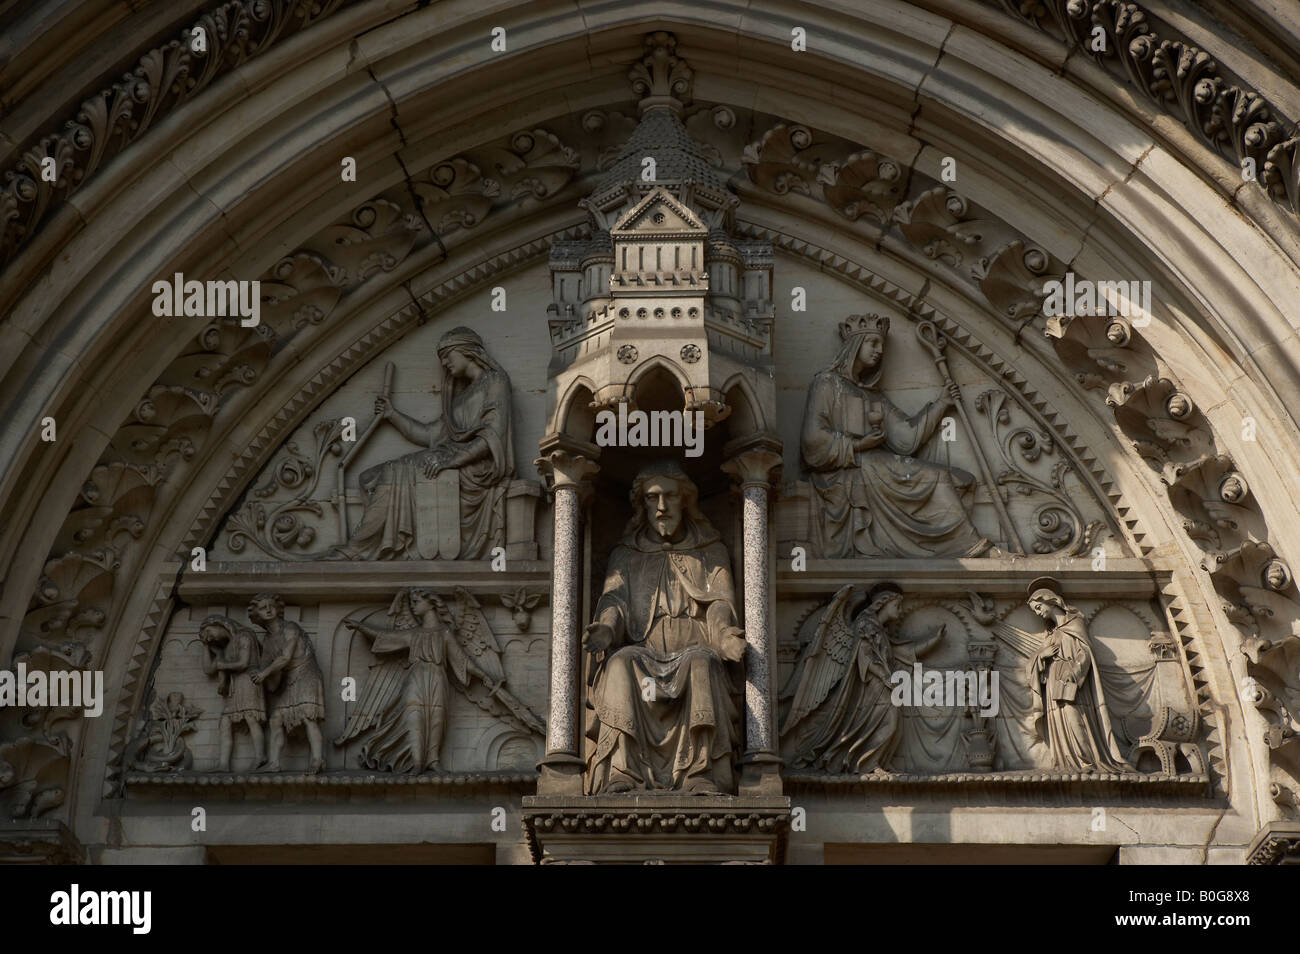 ORNATE STONE CARVED ARCHWAY OVER ENTRANCE TO SAINT WILFRIDS CHURCH DUNCOMBE PLACE YORK CITY UNITED KINGDOM - Stock Image